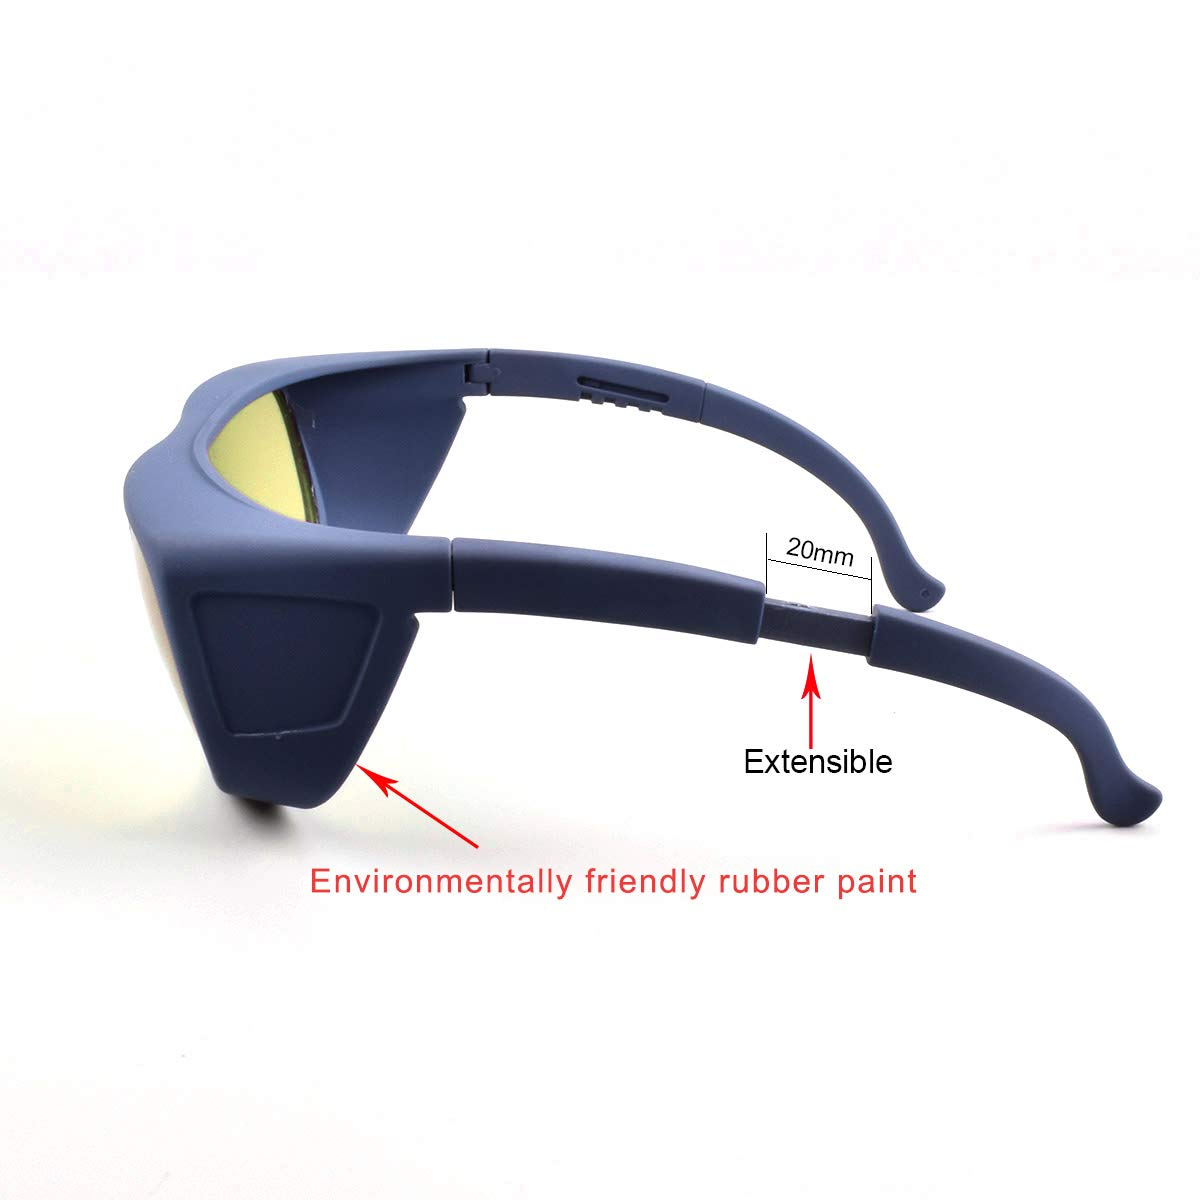 190nm-2000nm Wavelength IPL Laser Safety Glasses for Medical Eye Protection/Laser Cosmetology Operator Eyewear Compatible with Myopic Glasses (Black) by FreeMascot (Image #3)